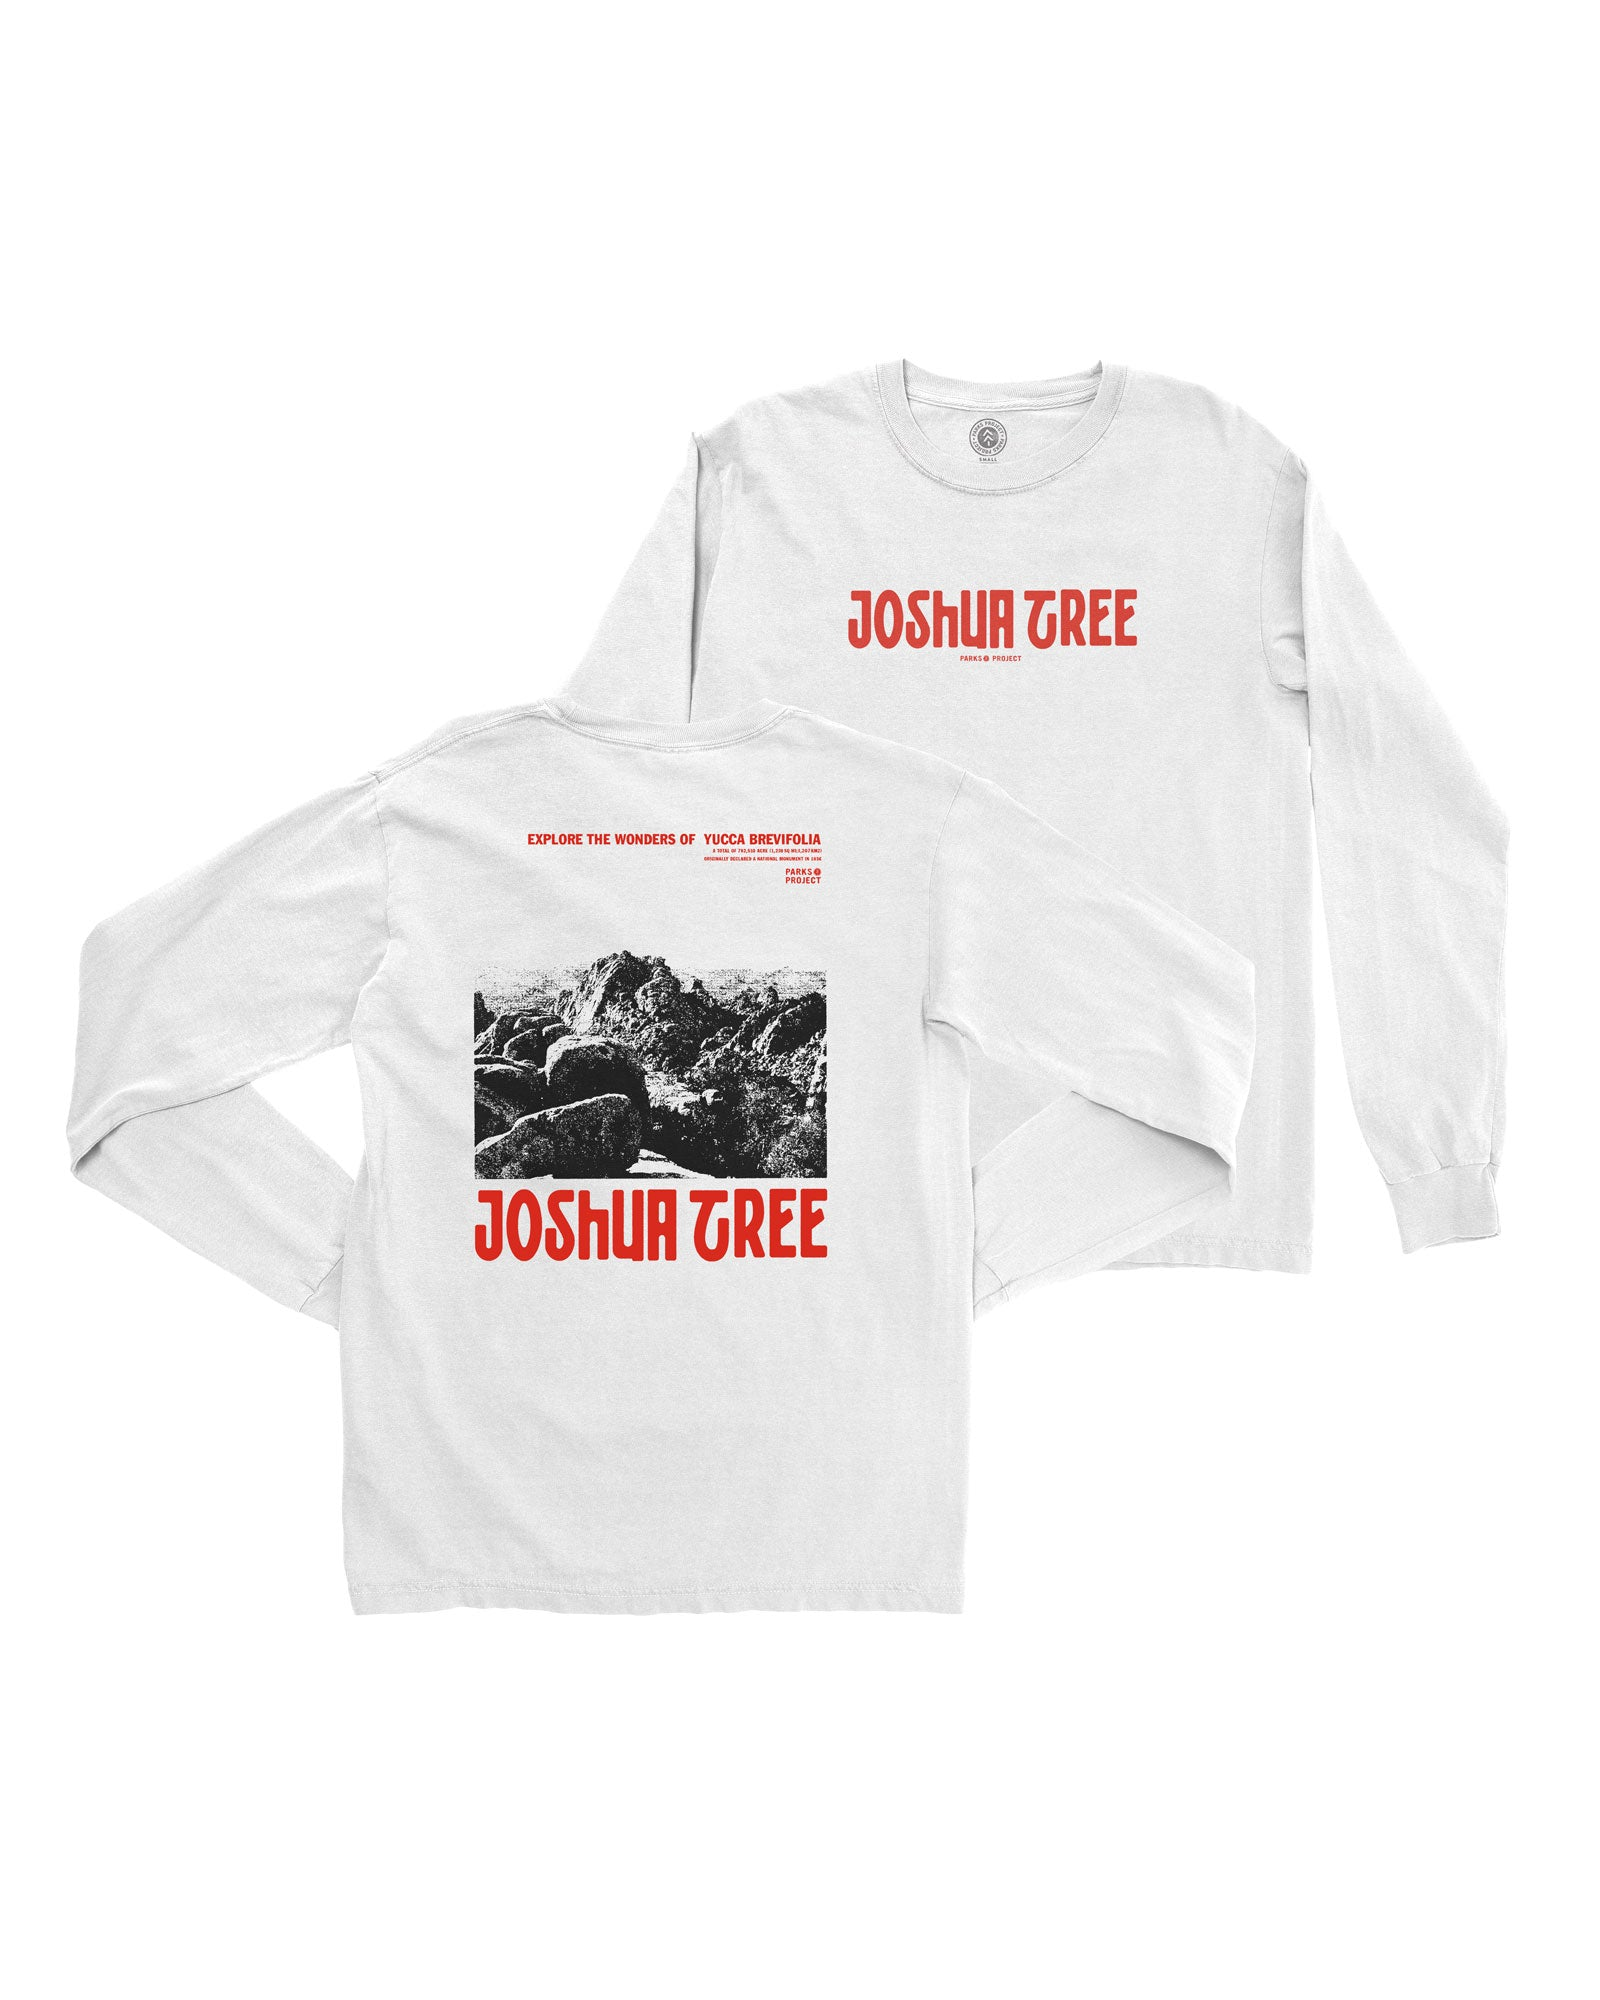 Joshua Tree Right to Explore Long Sleeve Tee | Parks Project | National Park Long Sleeve Shirts